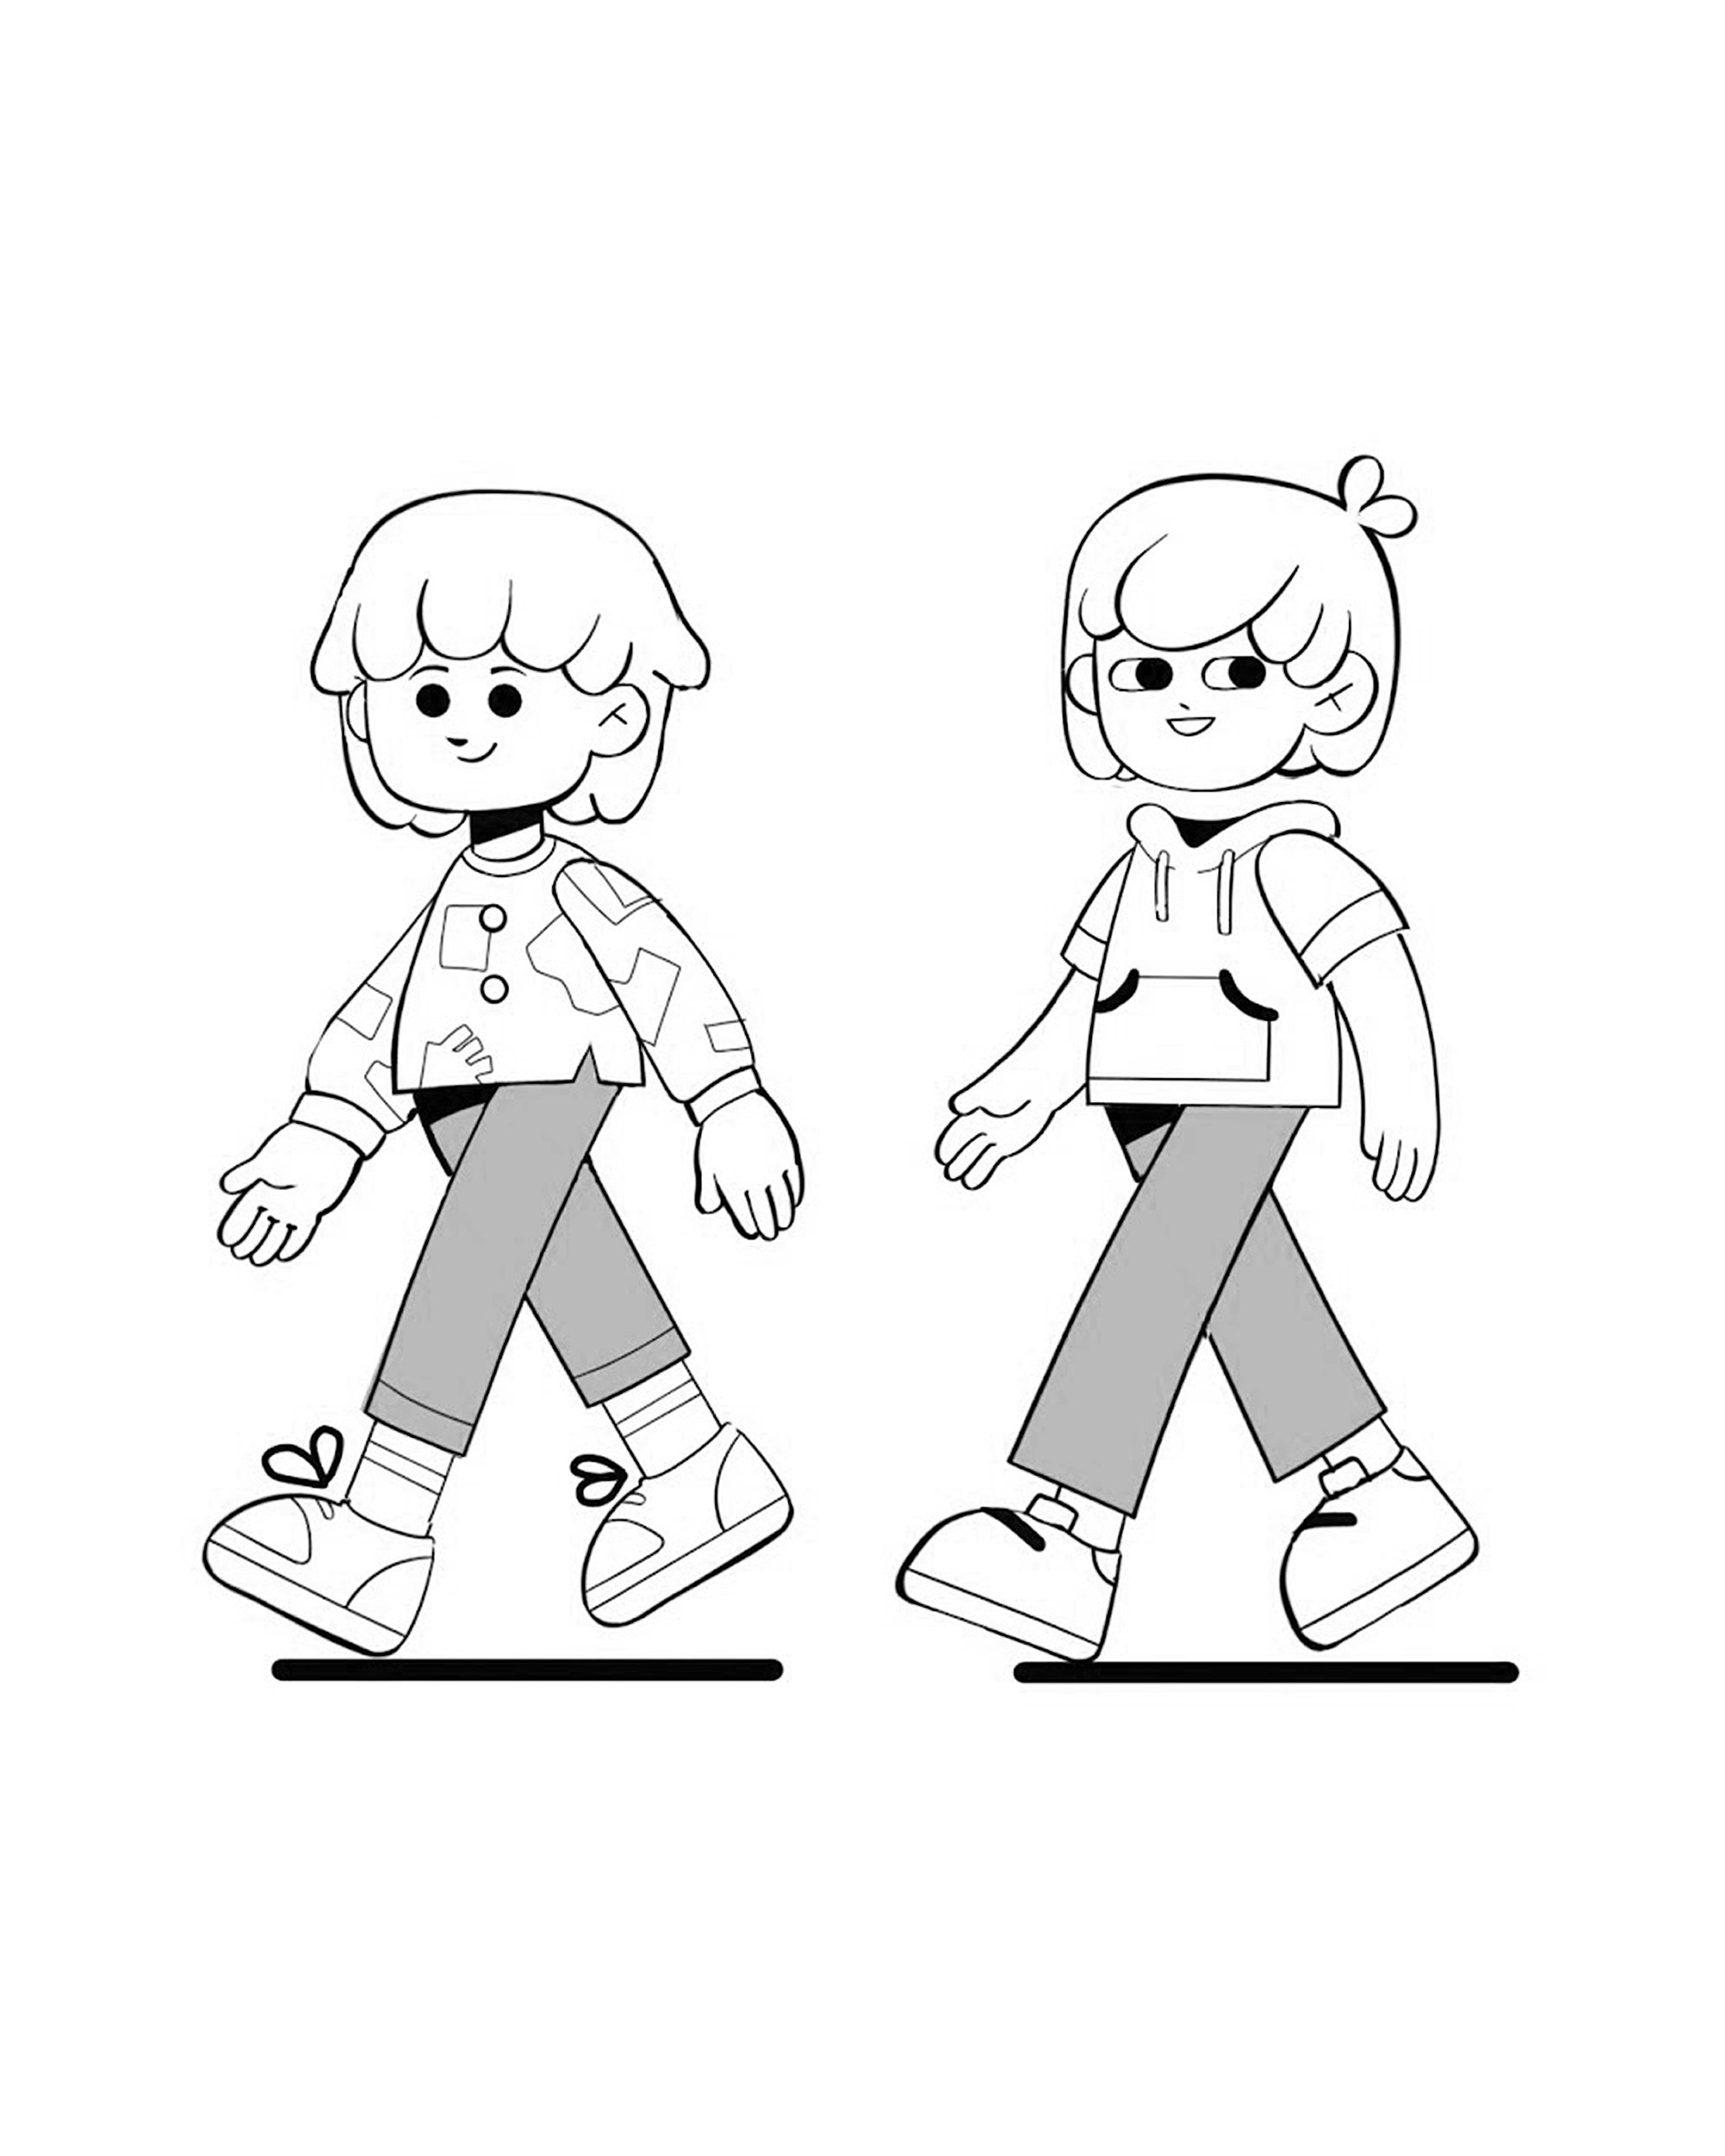 roofstudio_juni-learning_character-02-2